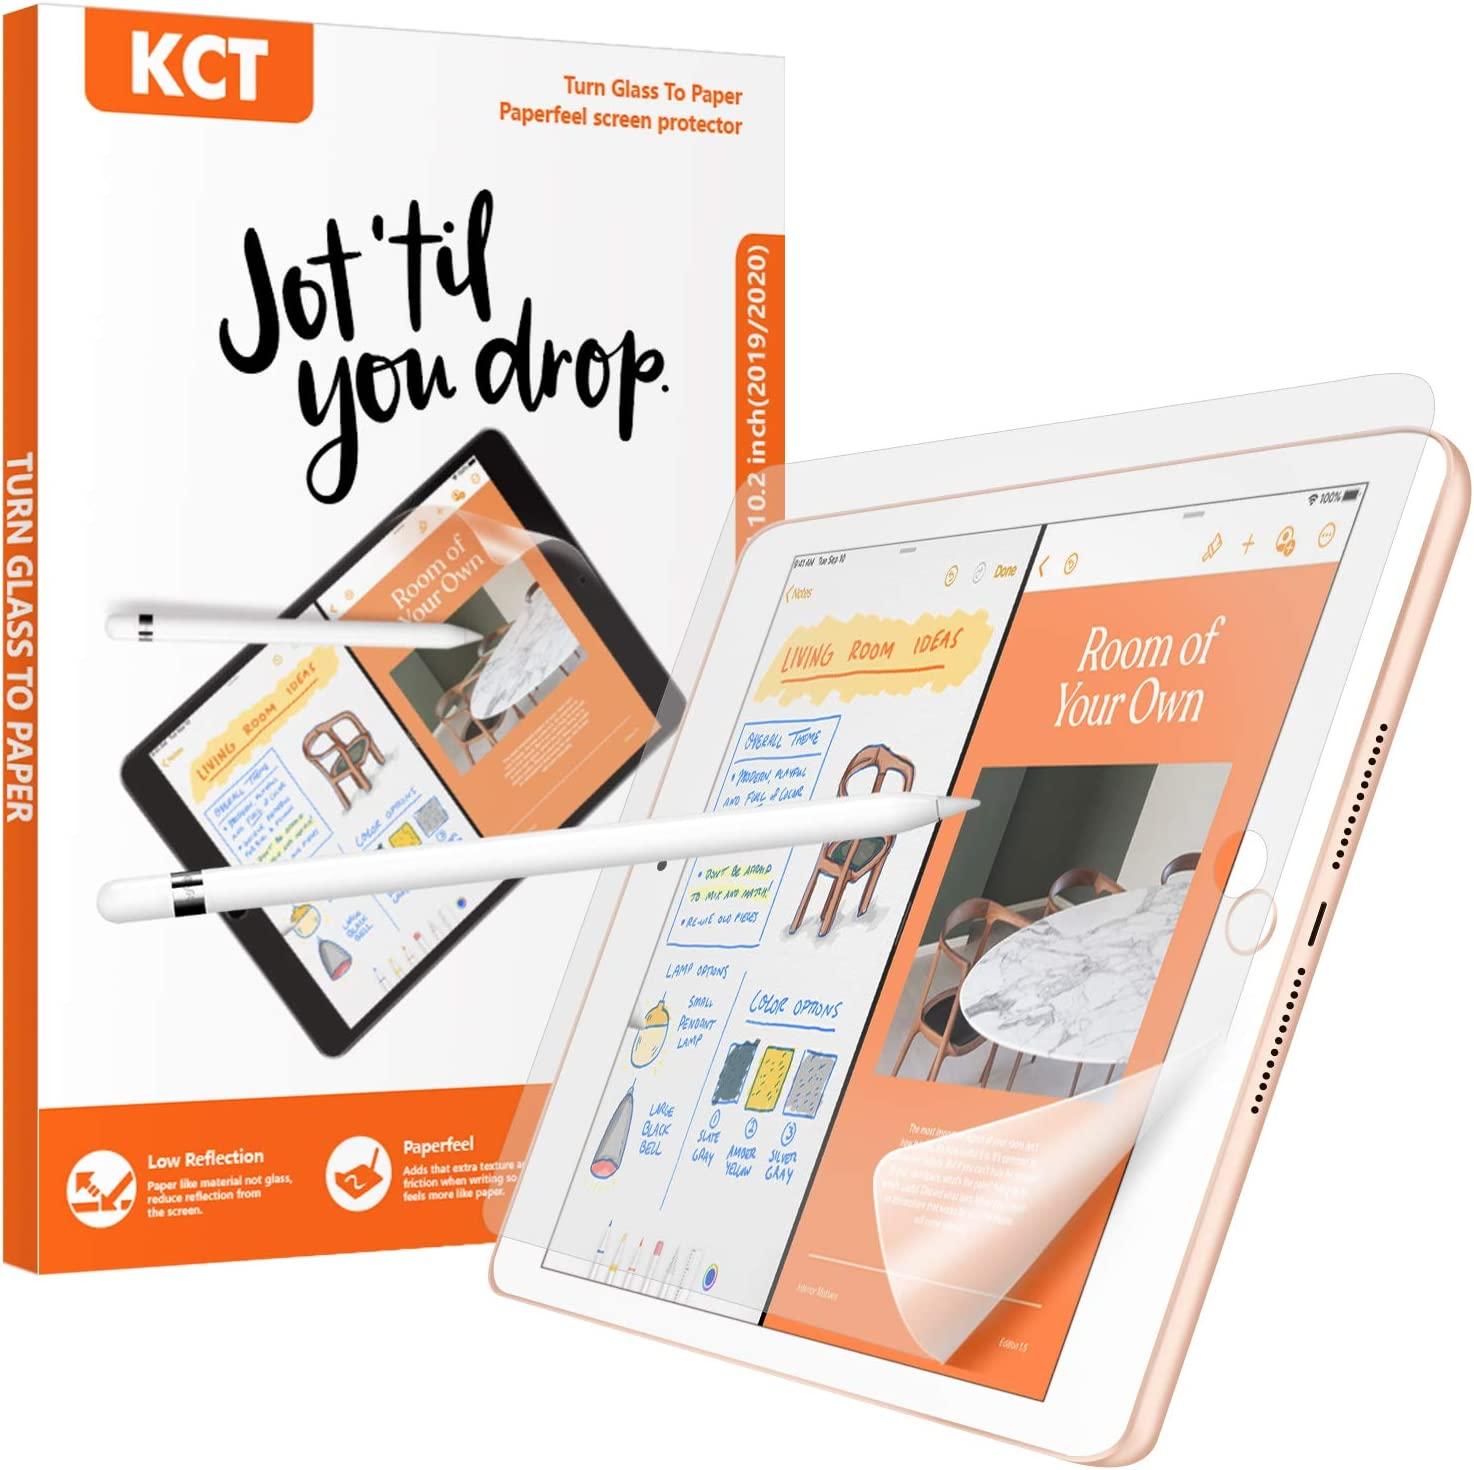 KCT [2 PACK] Paperfeel Screen Protector Compatible with iPad 9/8/7(10.2-Inch, 2021&2020&2019 Model, 9th 8th 7th generation),iPad 10.2 screen protector Matte PET Paperfeel Film No Glare Scratch Resistant Paperfeel Protector,Compatible with Apple Pencil